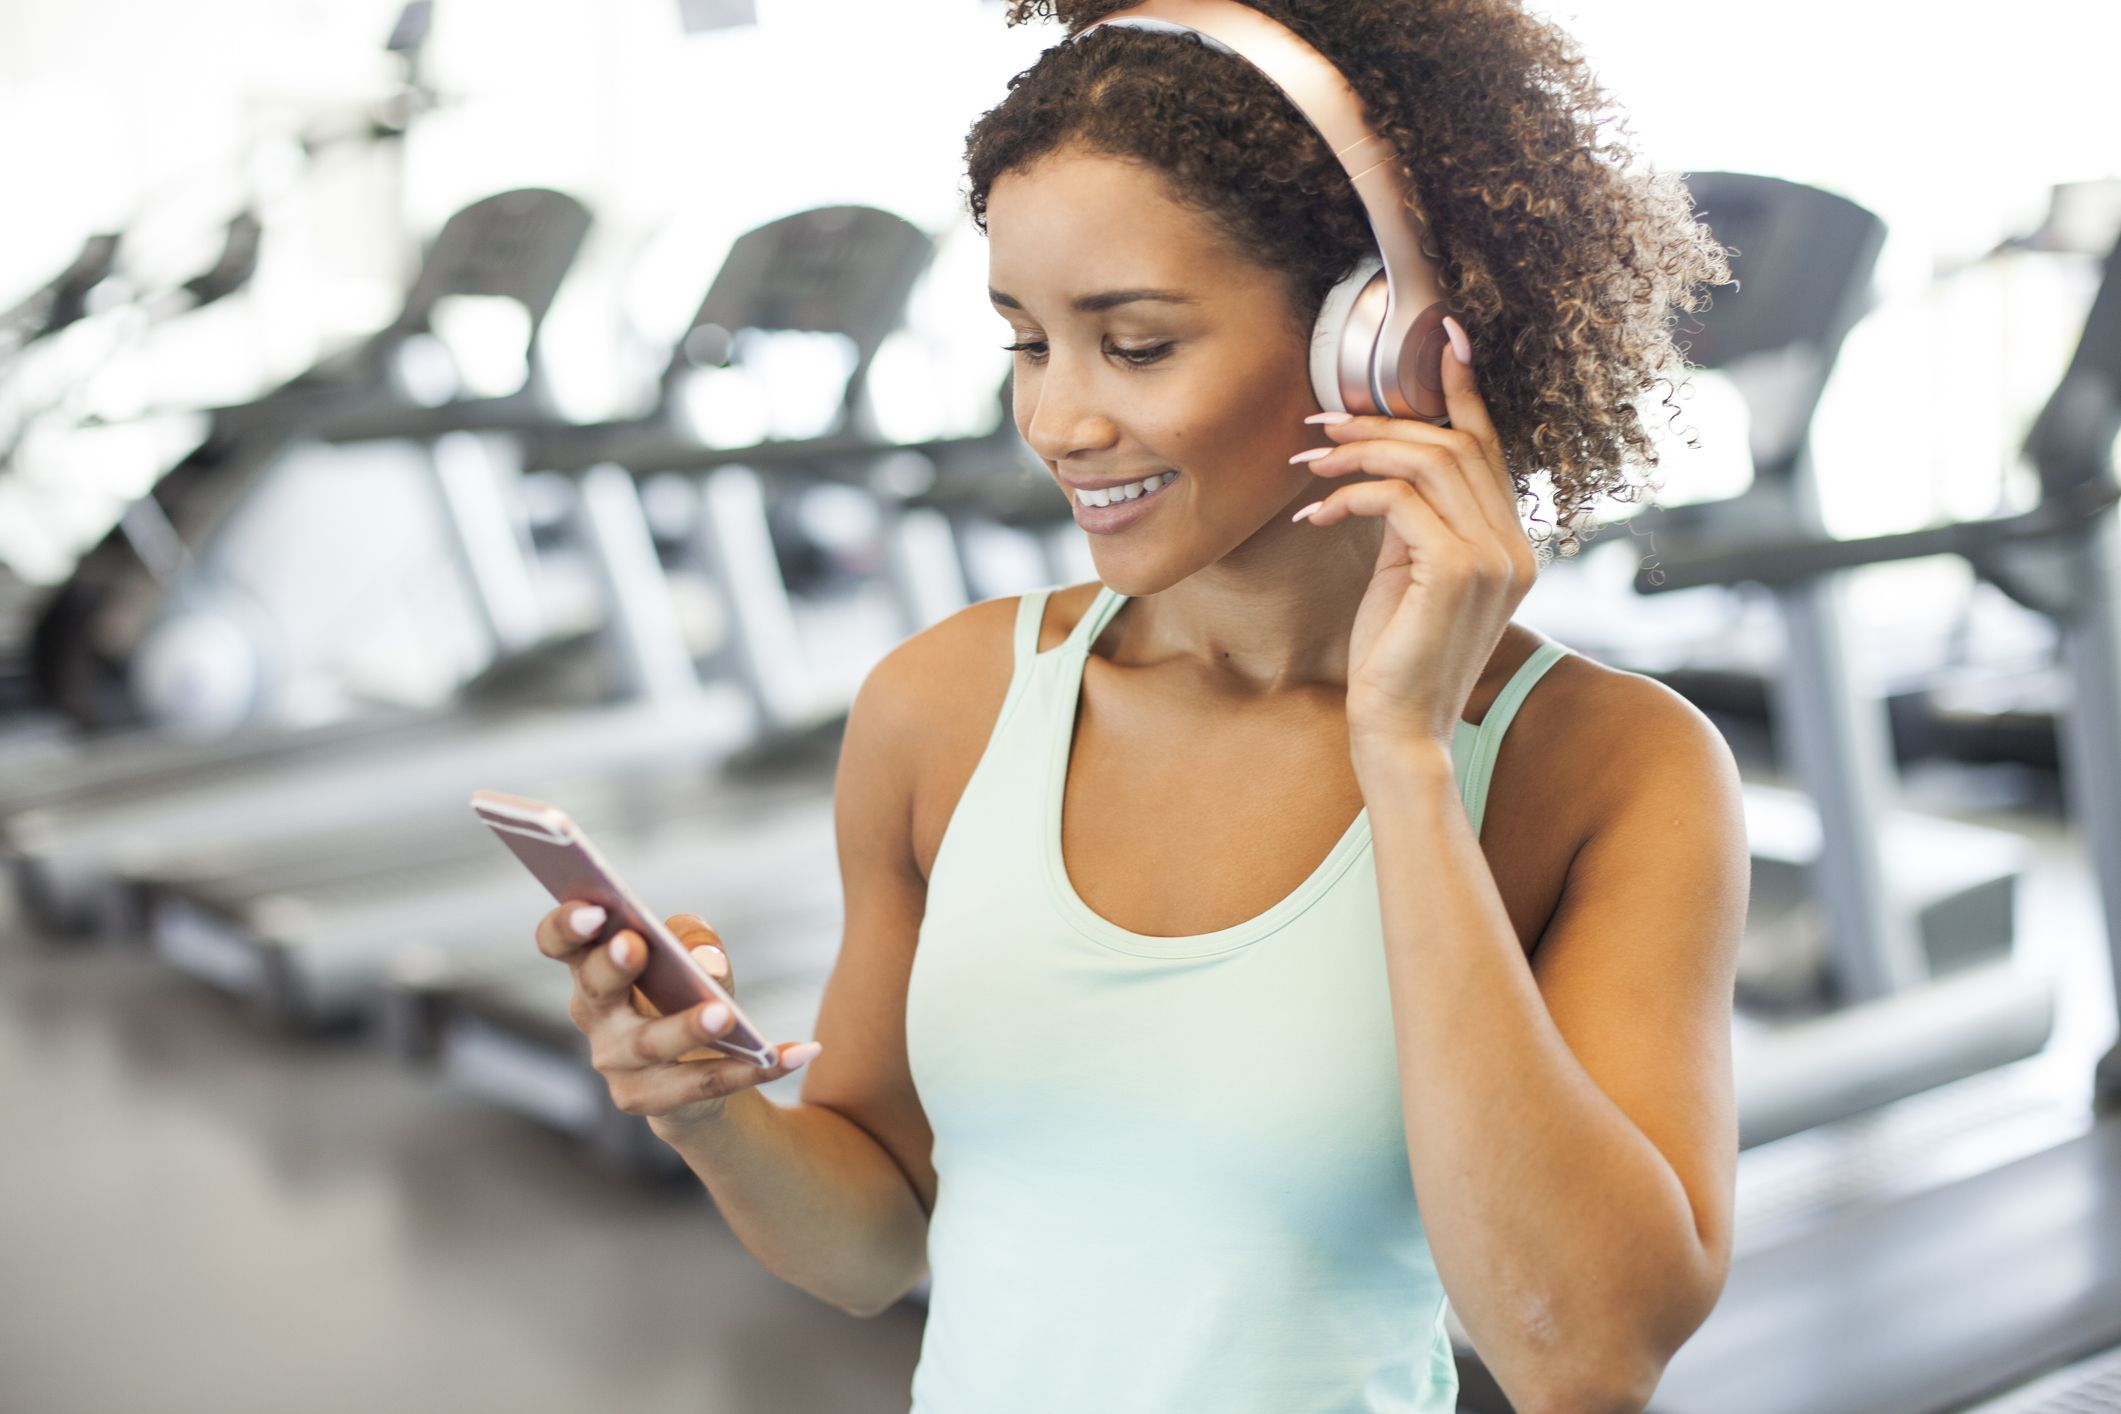 The 10 Most Popular Workout Songs Revealed - Are They on Your Playlist?